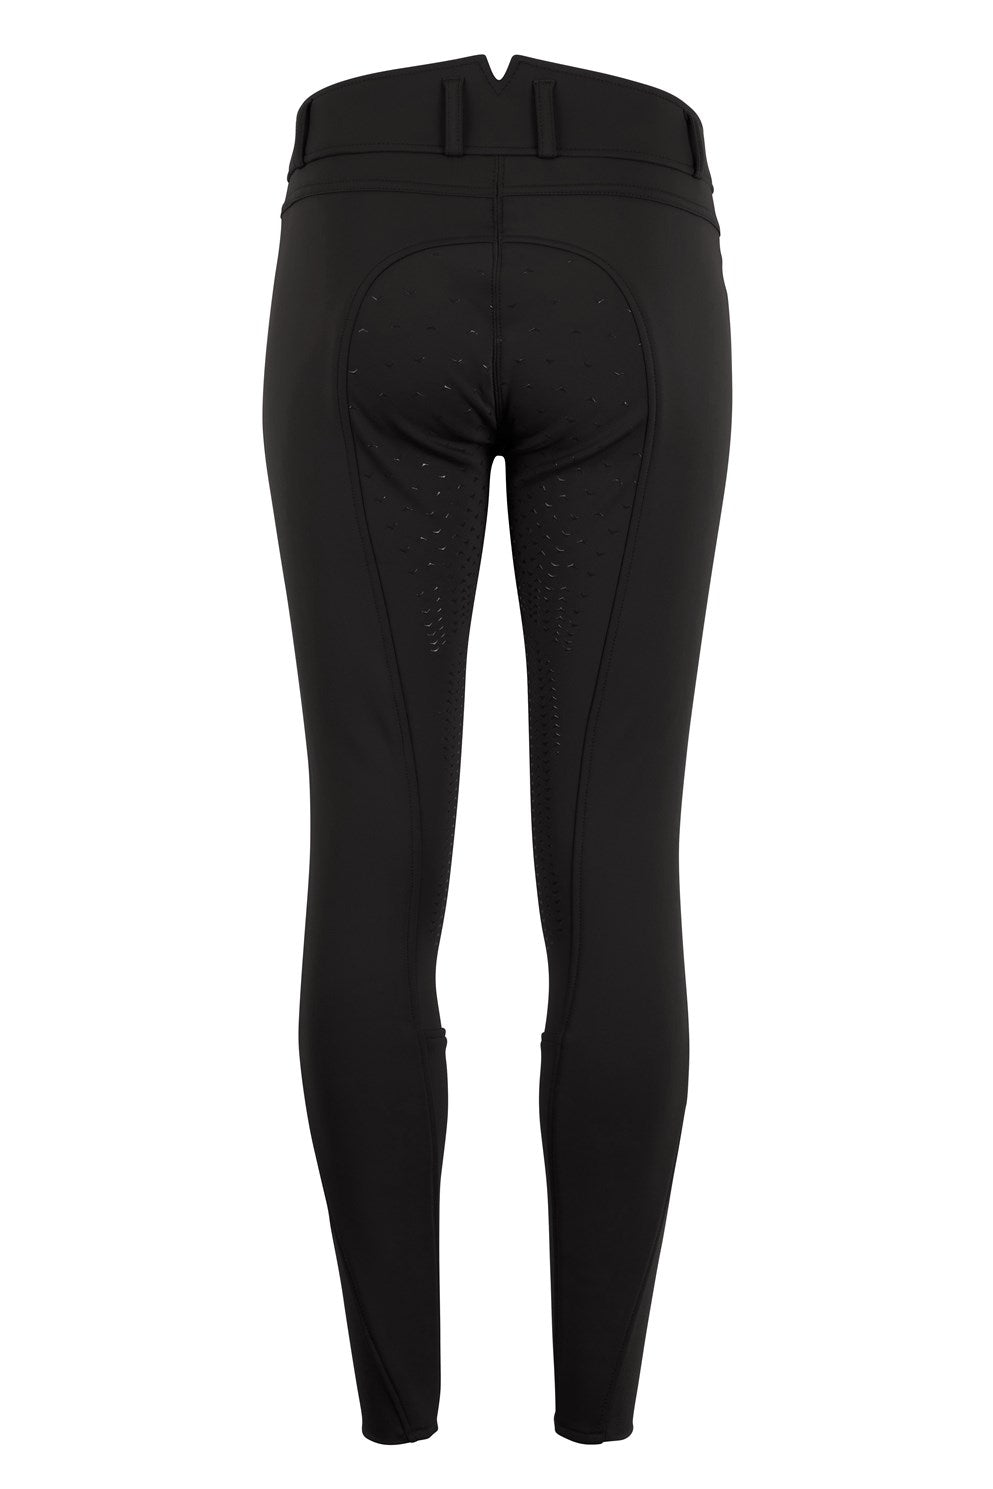 Montar Karly Winter Riding Breech - Black - The Dressage Store